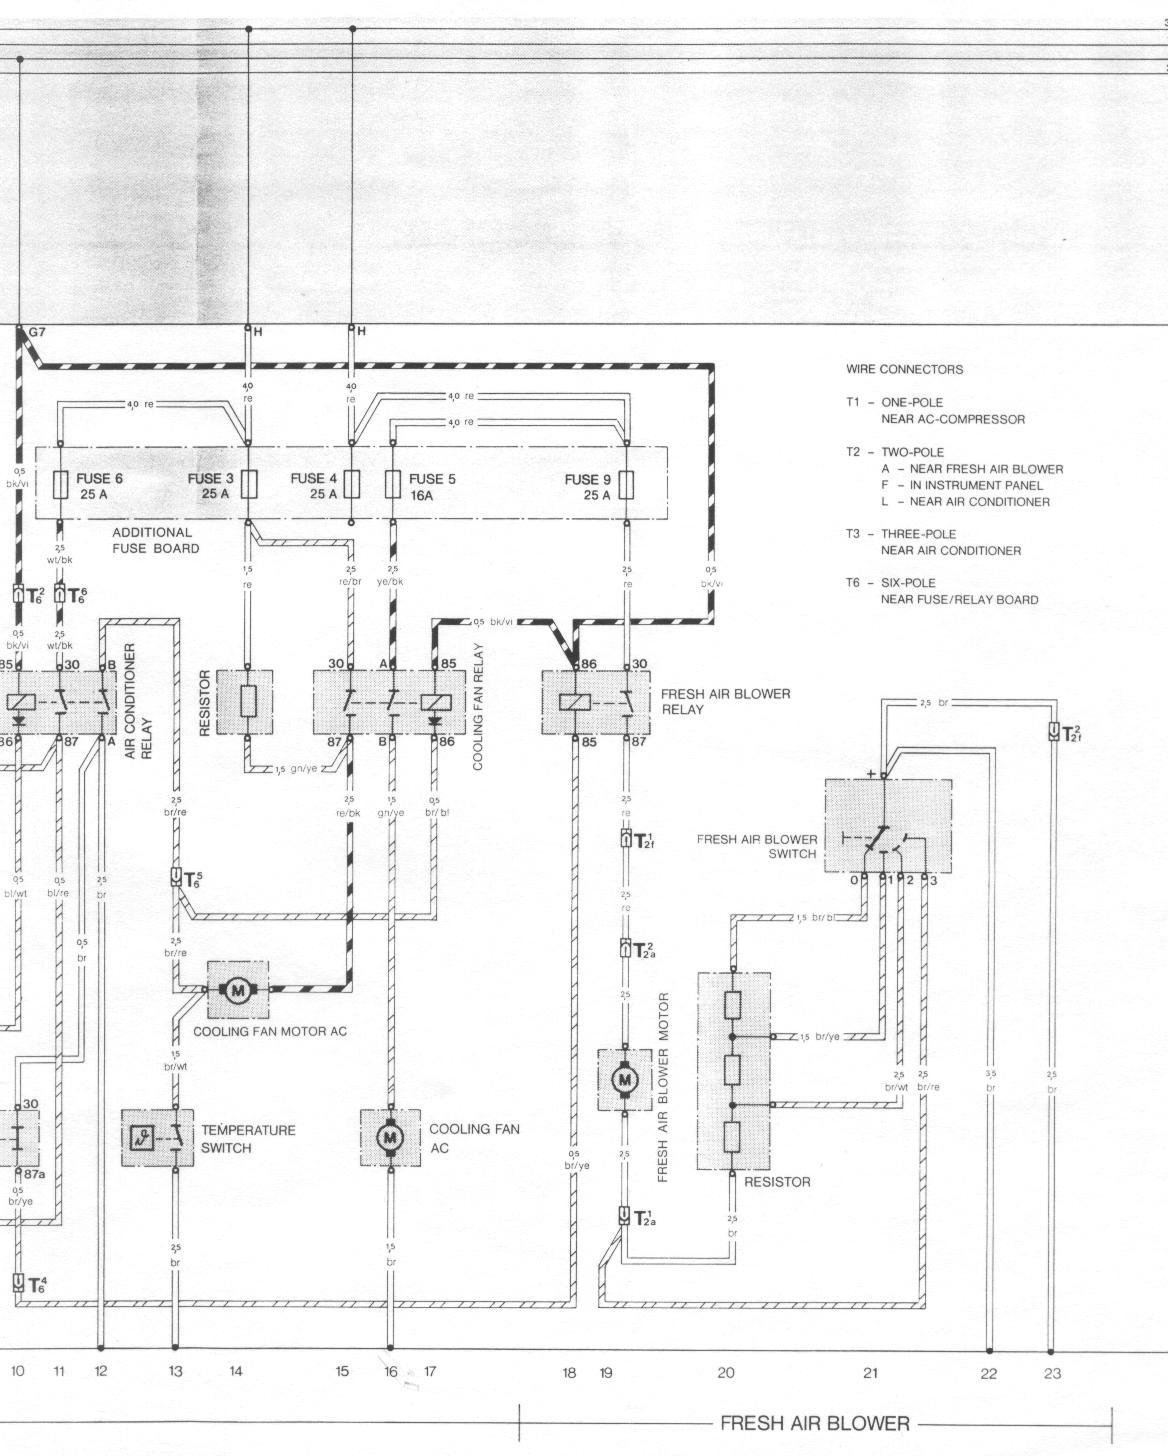 Porsche 944 Wiring Diagram - Board Wiring Diagrams